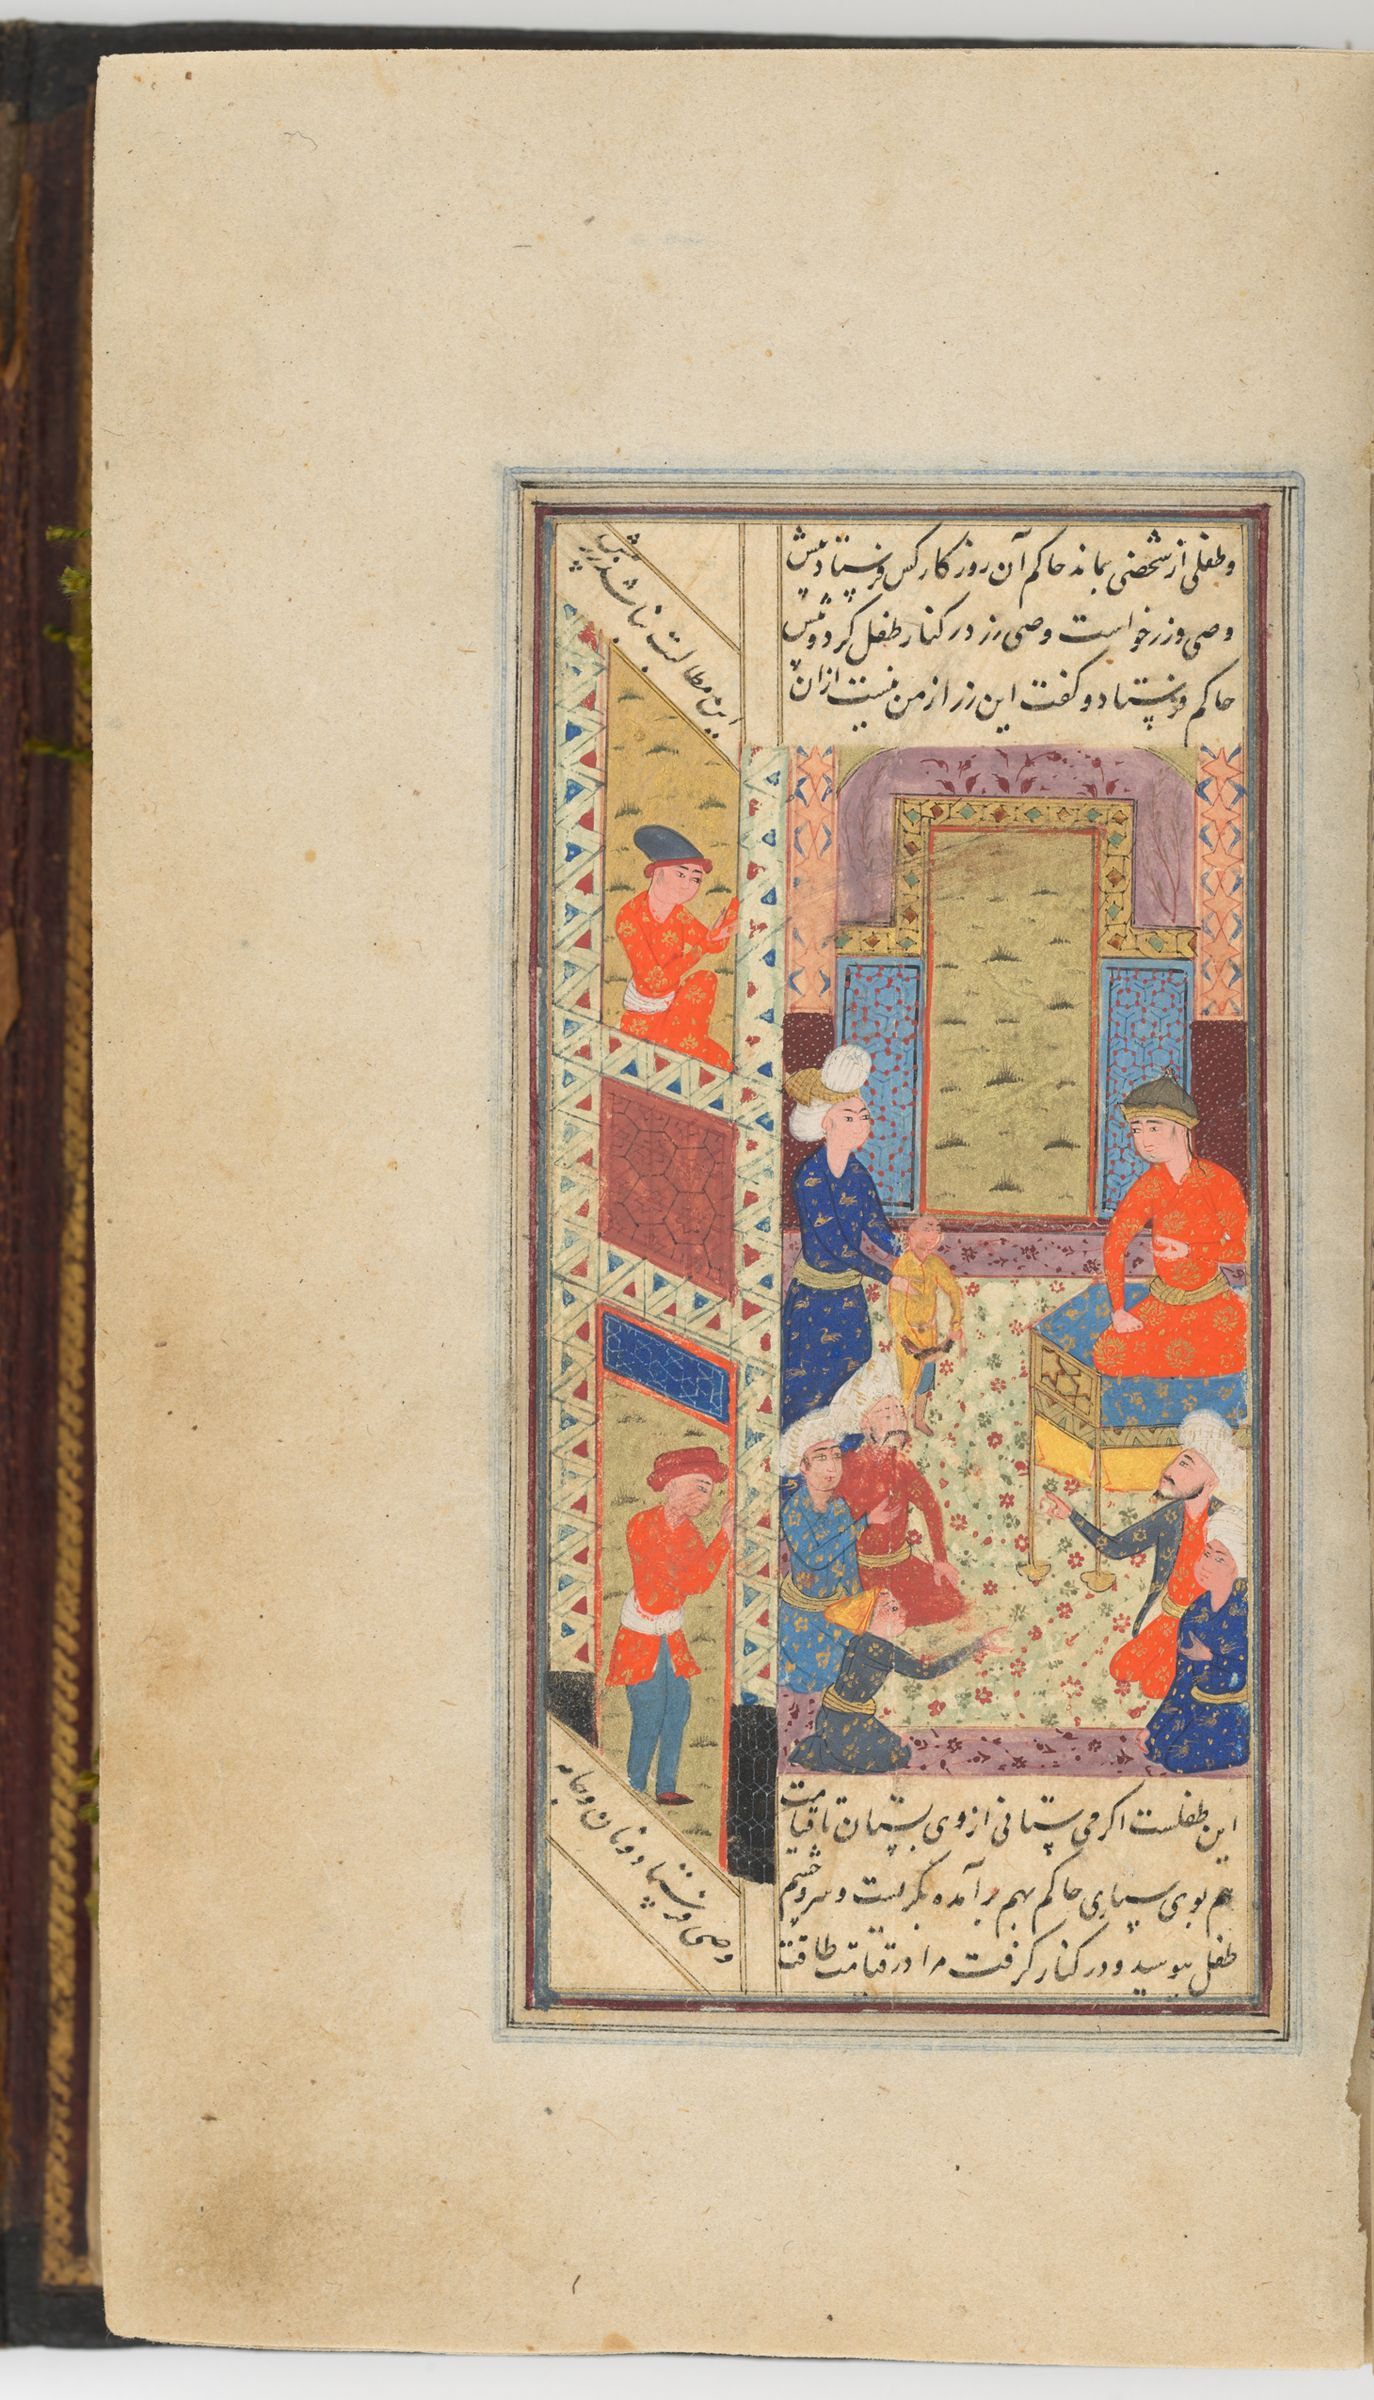 The Orphan From Whose Guardian The Ruler Asked For Gold (Painting Recto; Text Verso Of Folio 27), Painting From A Manuscript Of The Kulliyat Of Sa'di